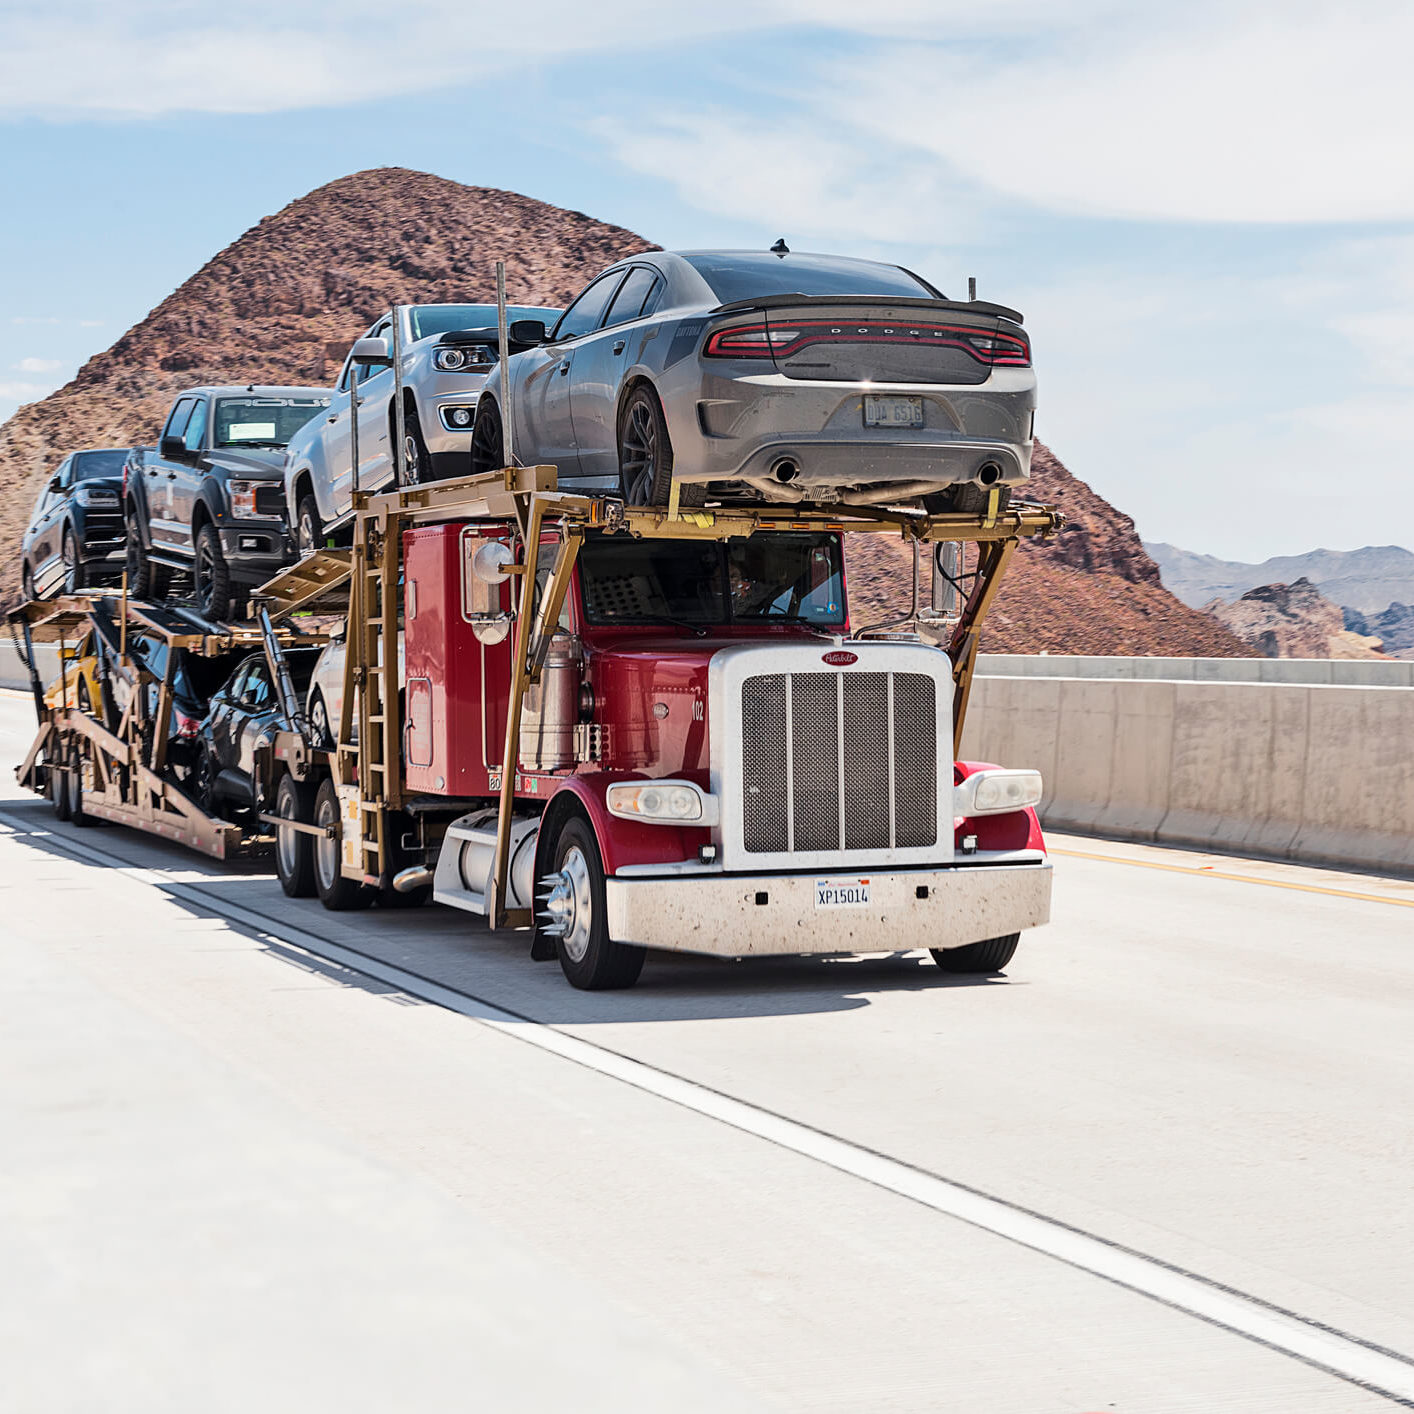 Best Cheap Car Shipping Companies of 2019 - Pricing & More